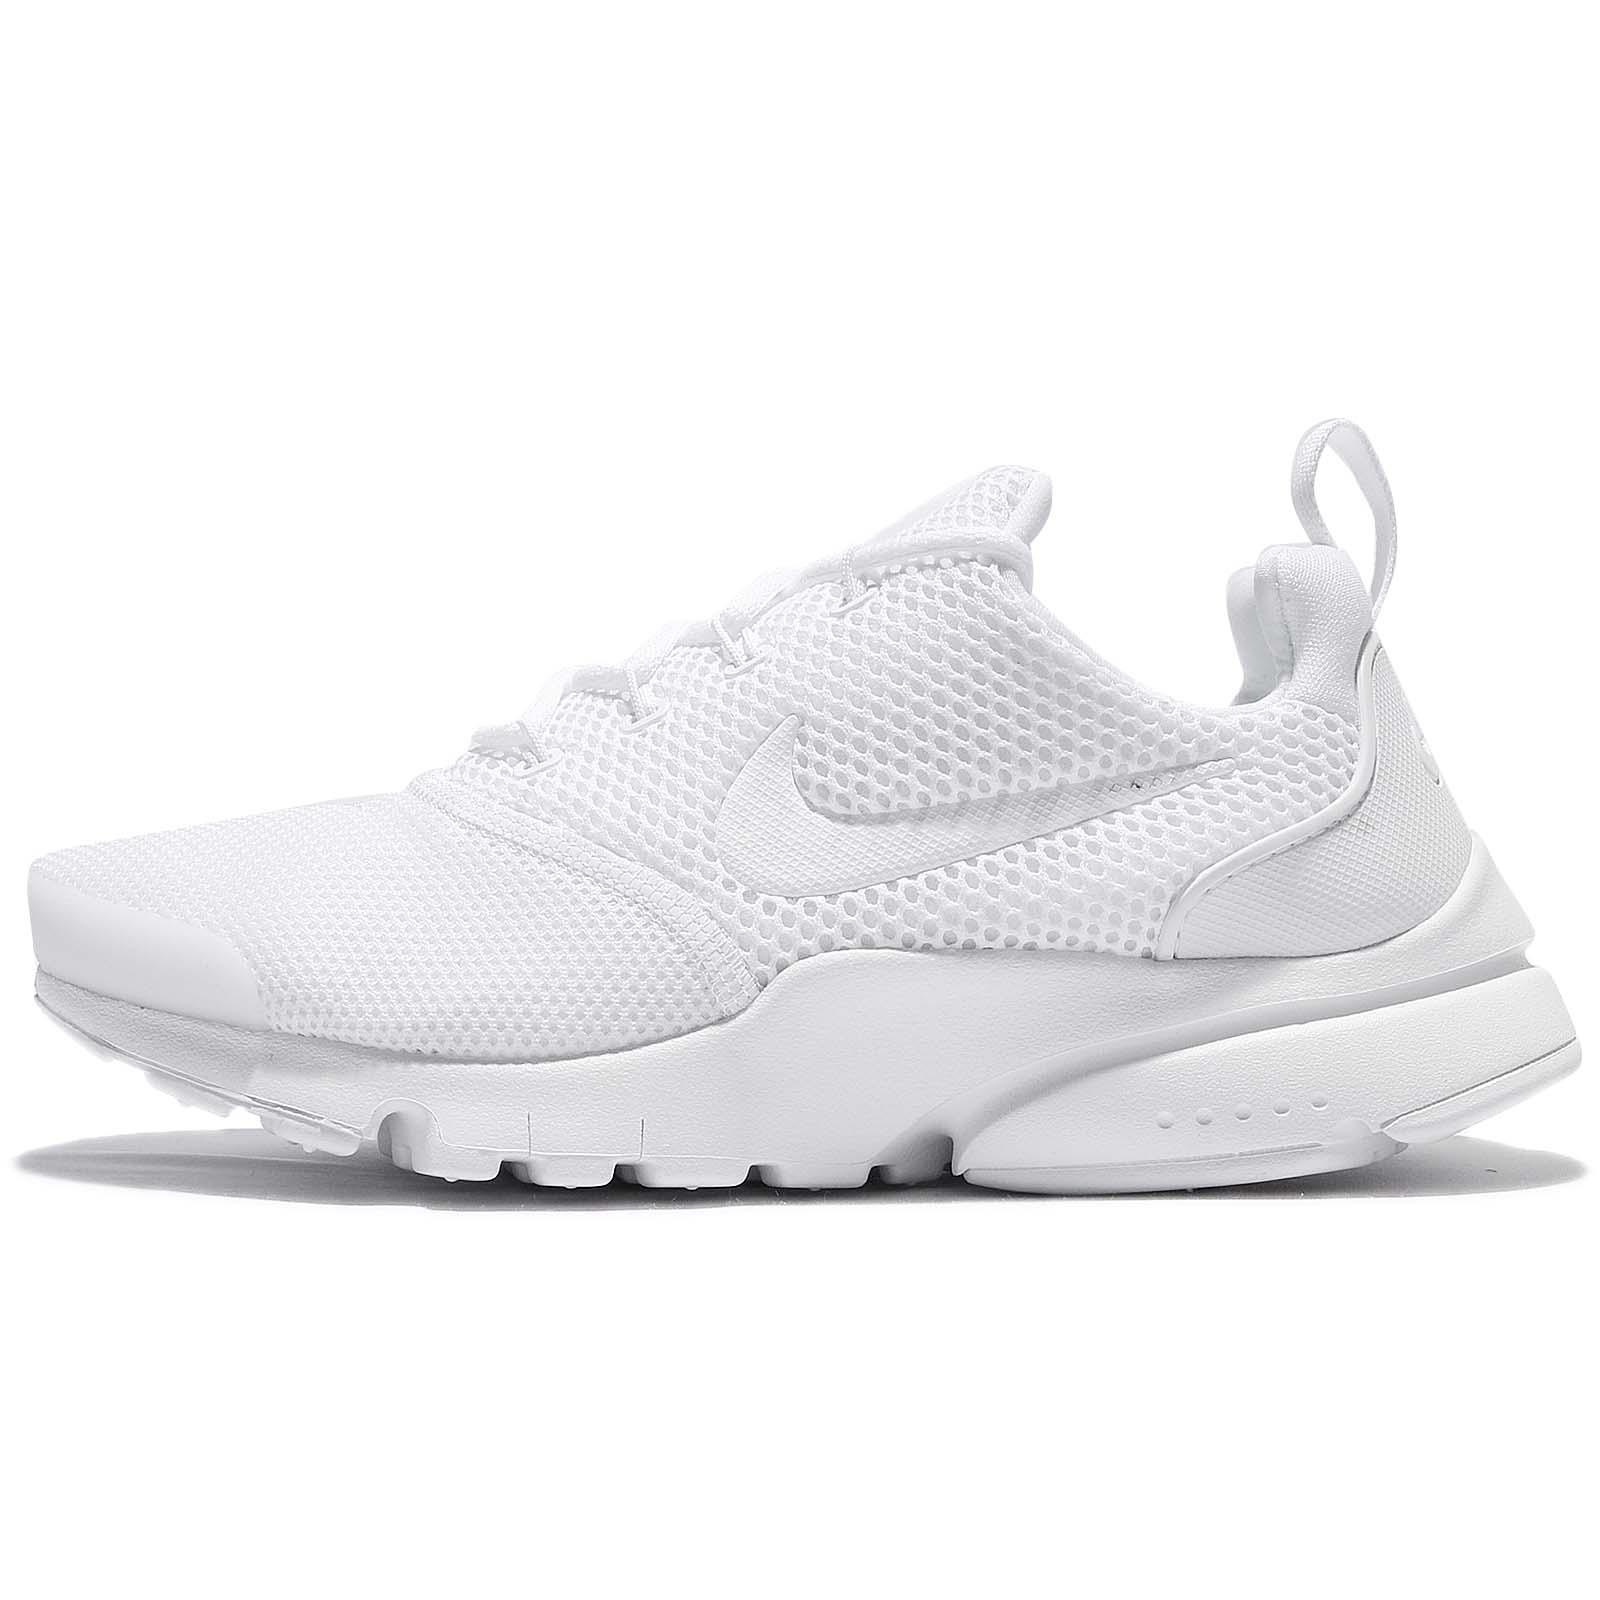 Nike Presto Fly GS Triple White Kids Women Running Shoes Sneakers 913966-101